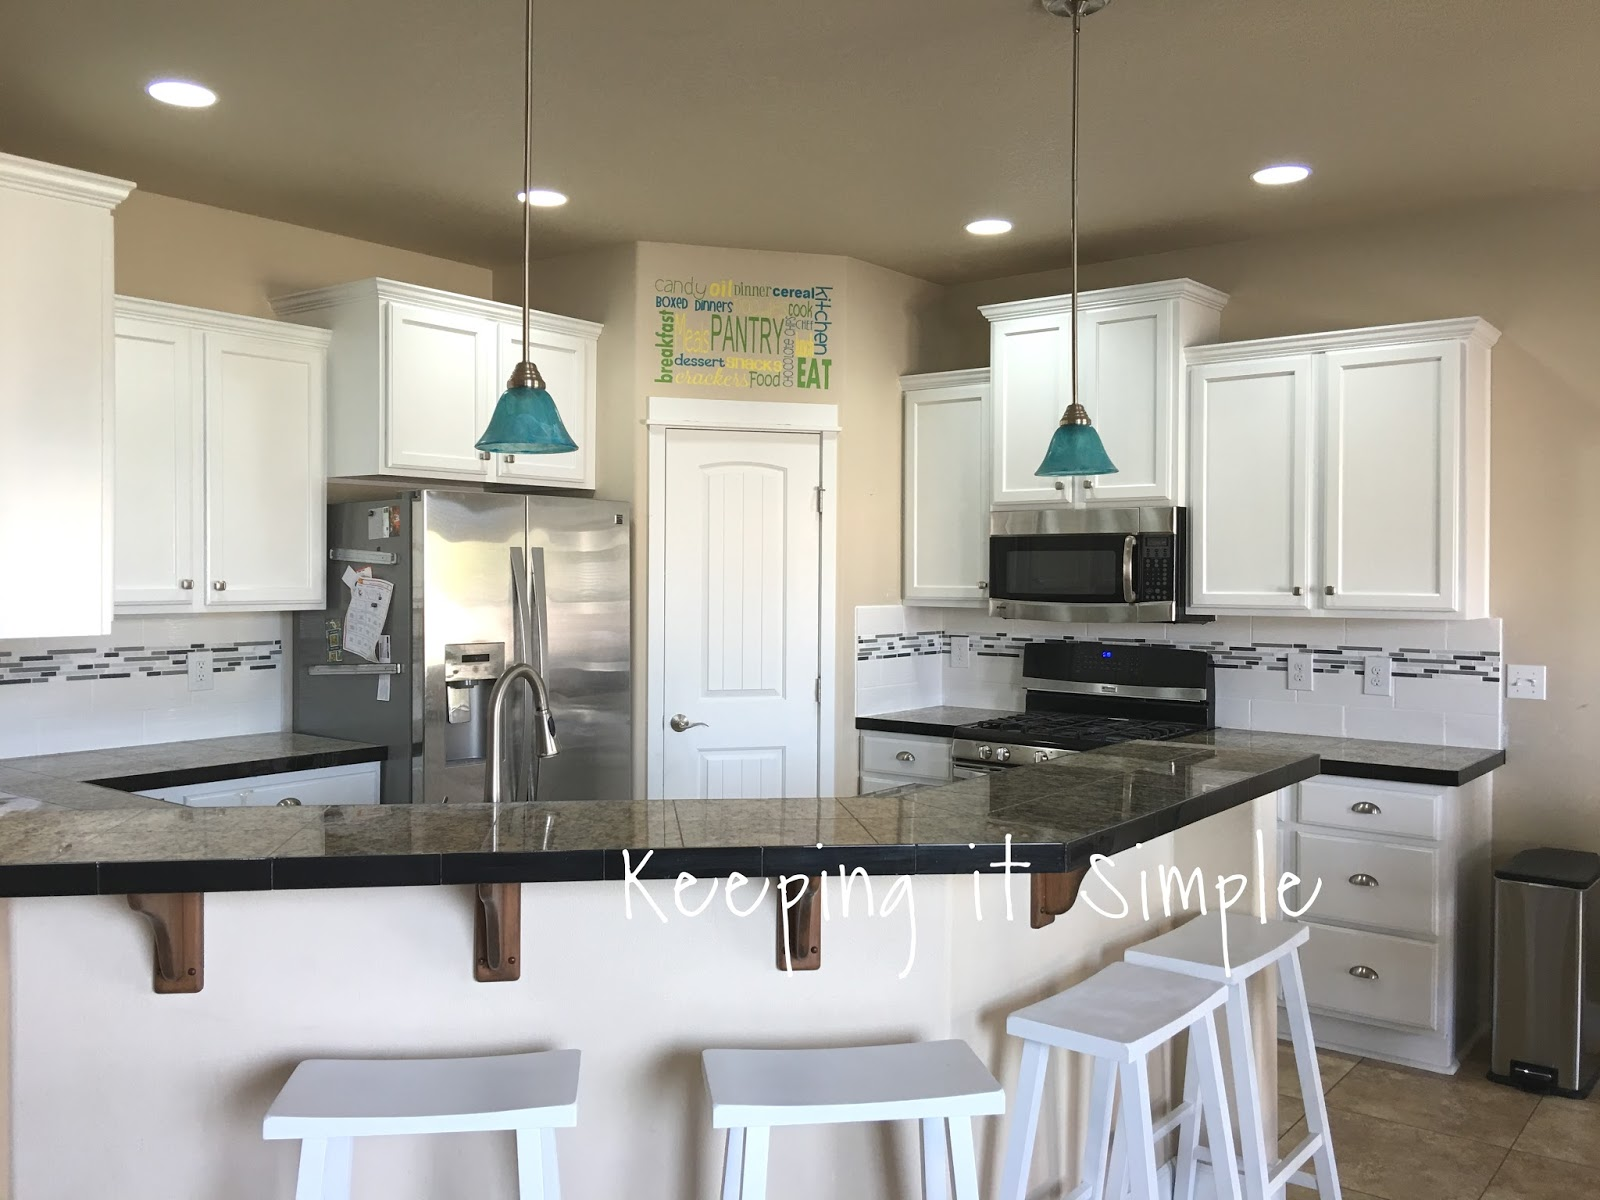 Kitchen Makeover Ideas Without A Major Renovation